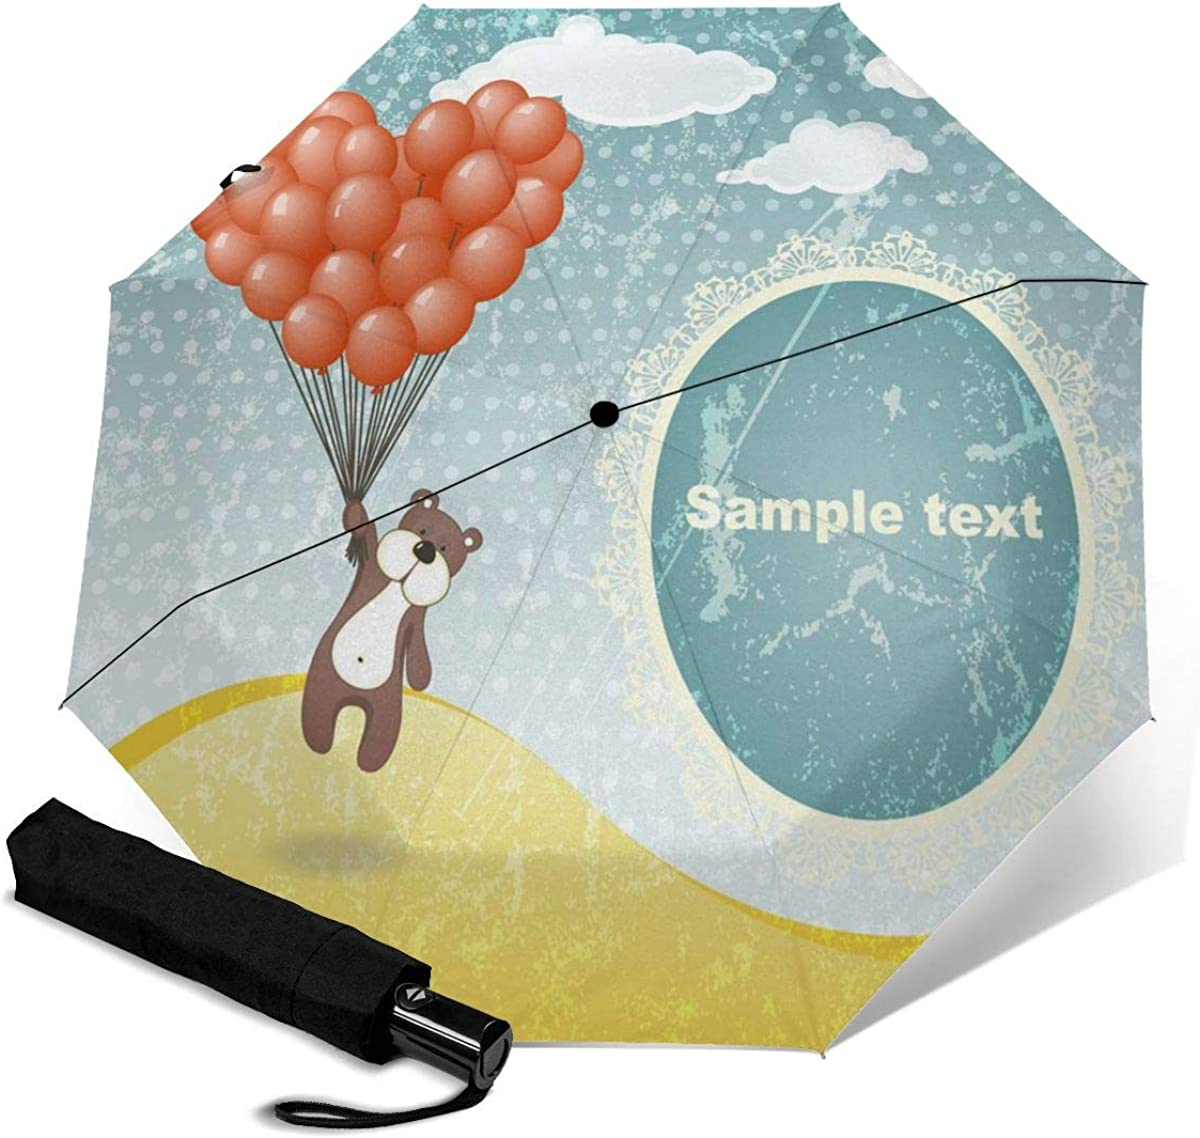 Cute Teddy Bear With A Balloon Compact Travel Umbrella Windproof Reinforced Canopy 8 Ribs Umbrella Auto Open And Close Button Personalized